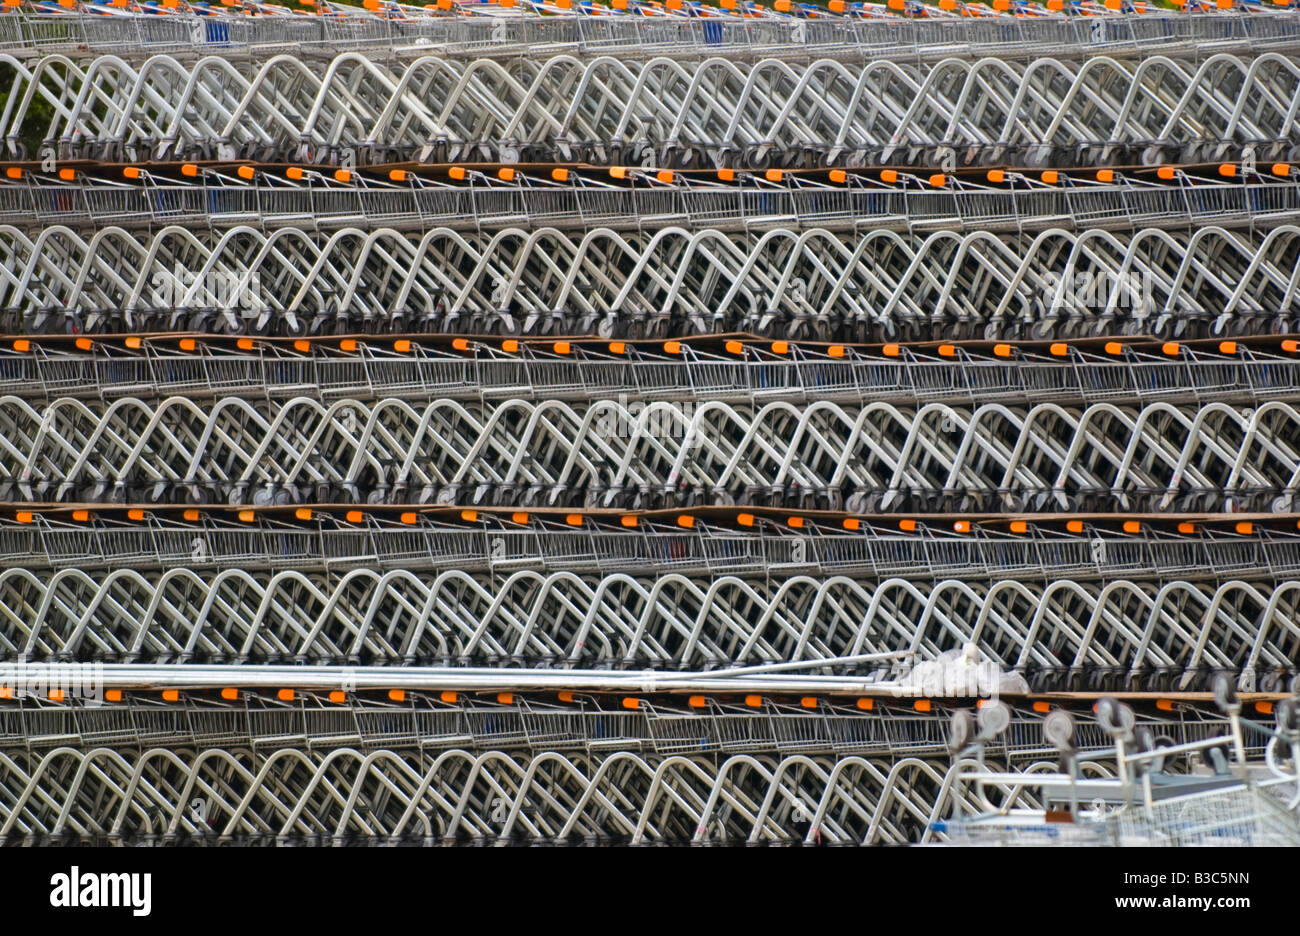 Stacked shopping trolleys waiting dispatch to supermarkets UK - Stock Image